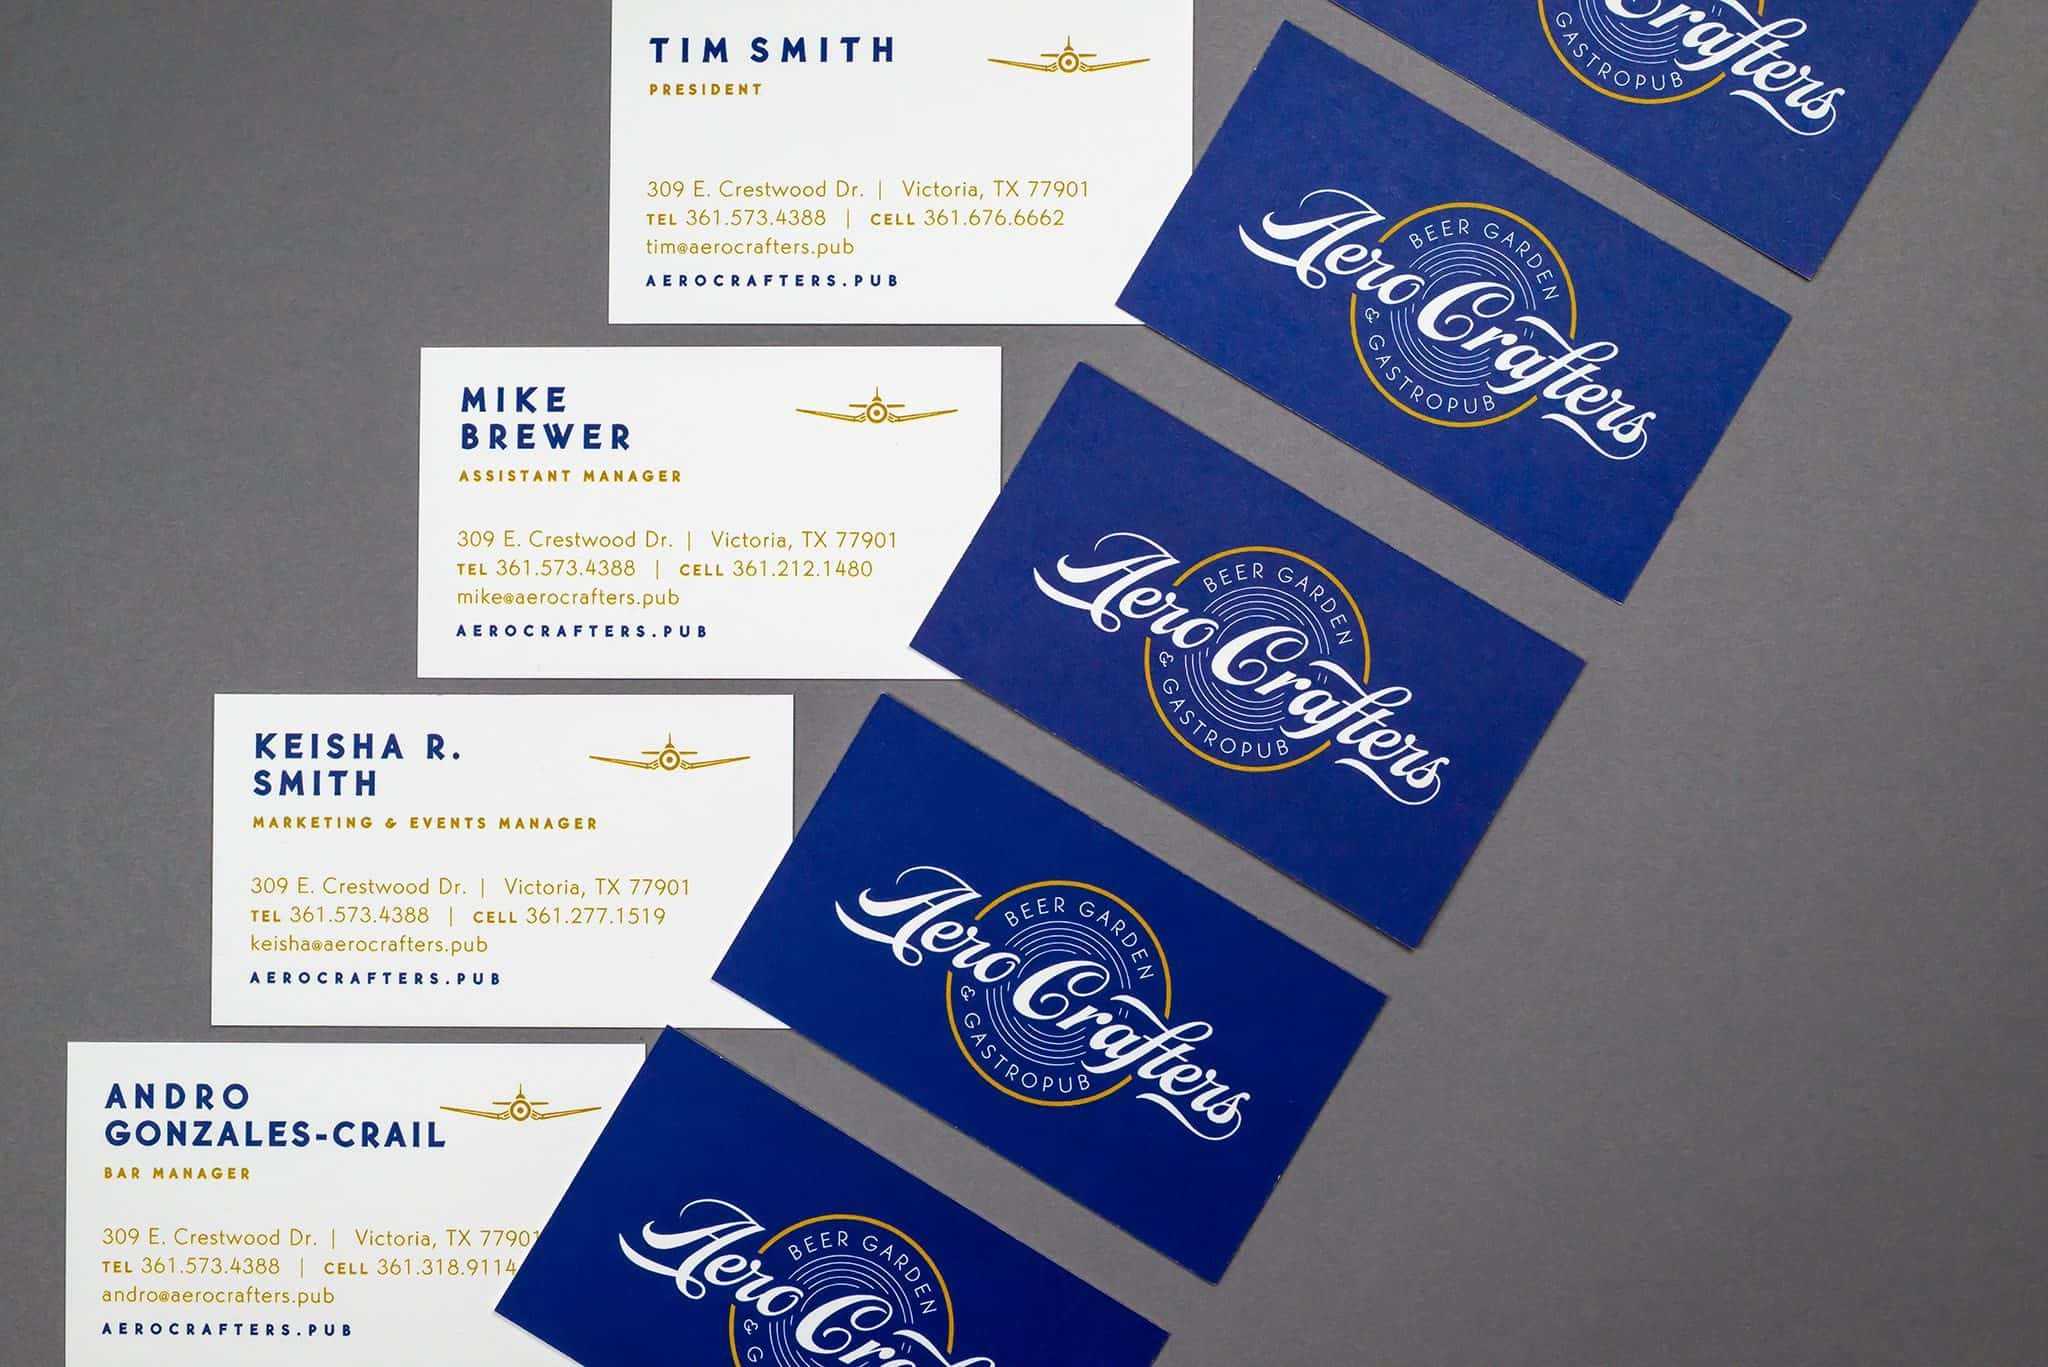 Stationery and business cards for Aero Crafters Beer Garden, Victoria | Designed by Field of Study: A branding and graphic design consultancy | Houston TX | Jennifer Blanco & John Earles